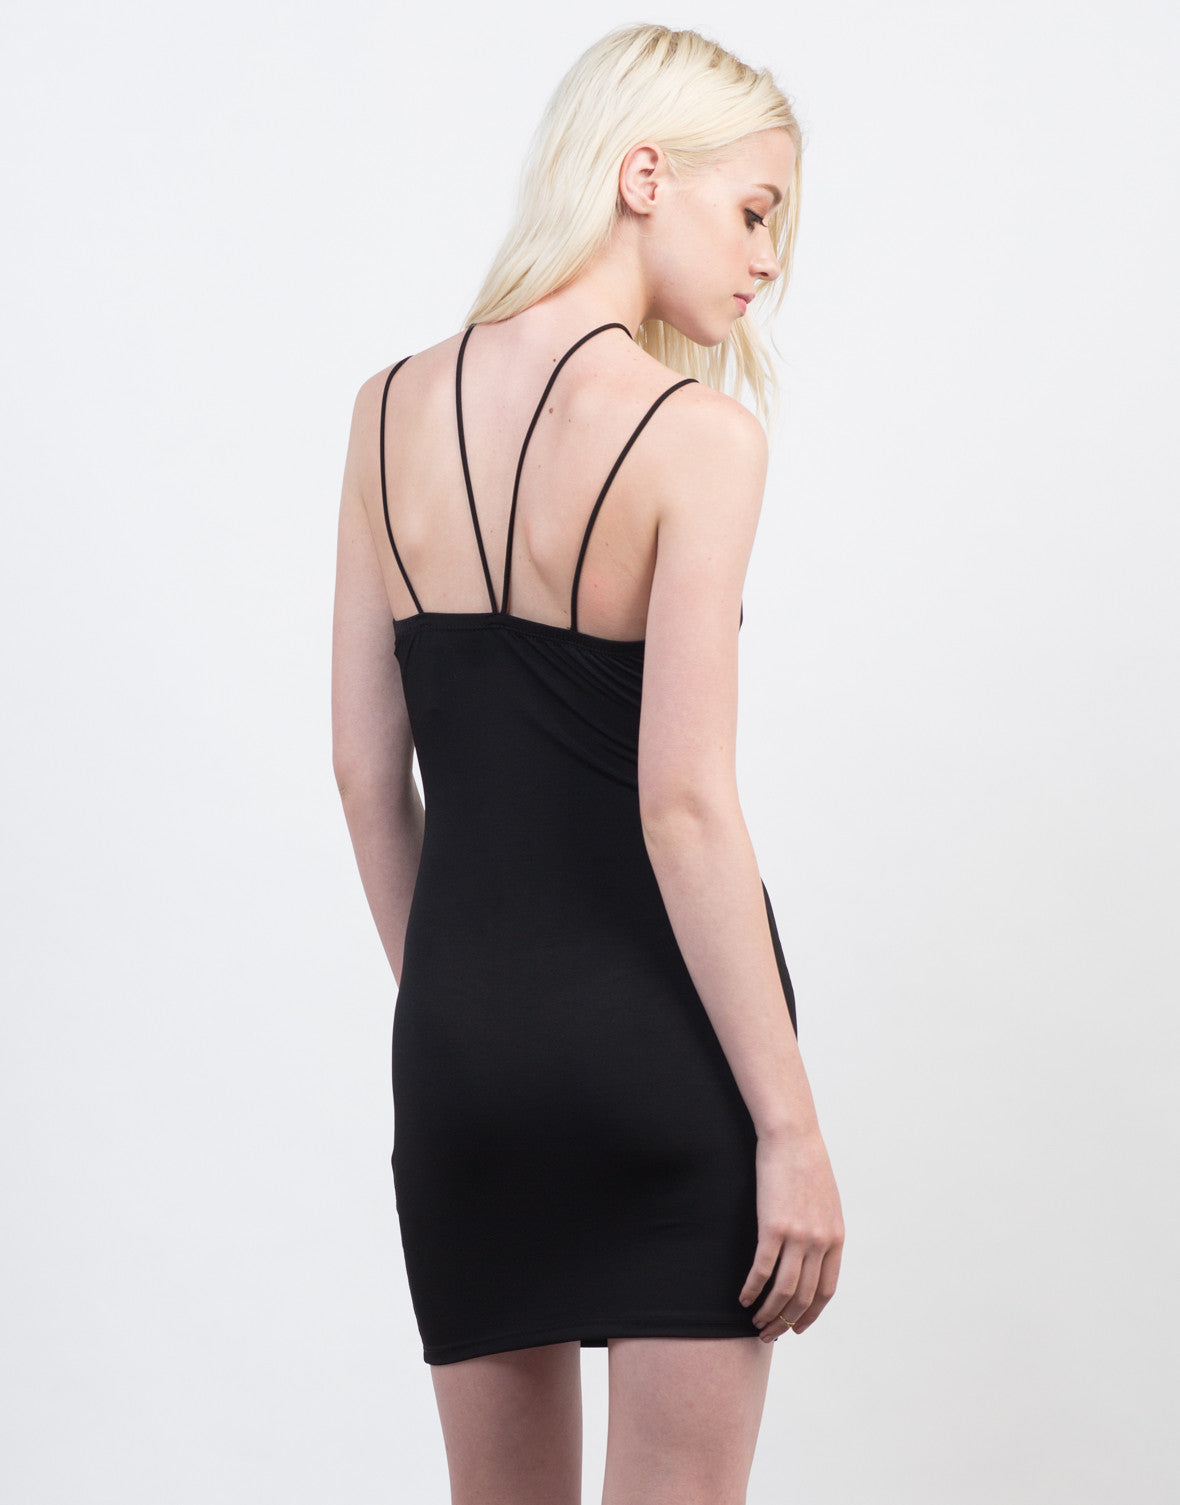 Strappy Black Dress - 2020AVE